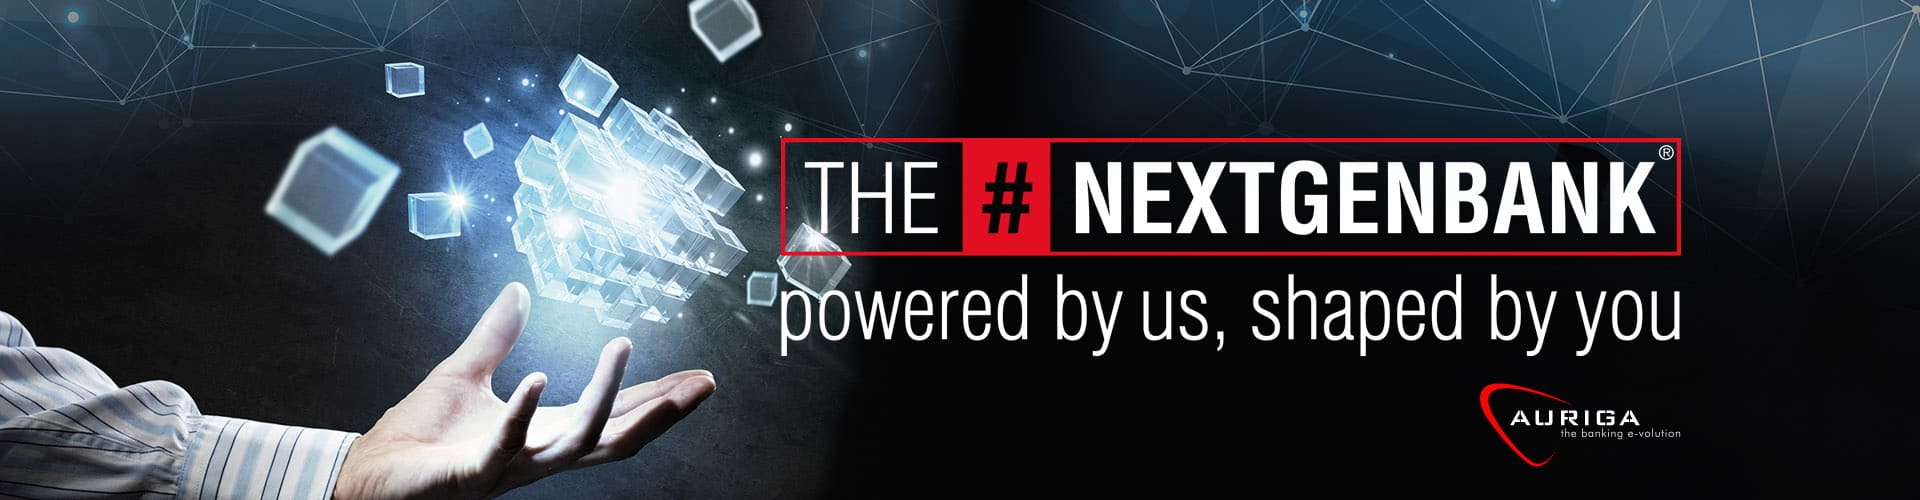 THE#NEXTGENBANK Auriga